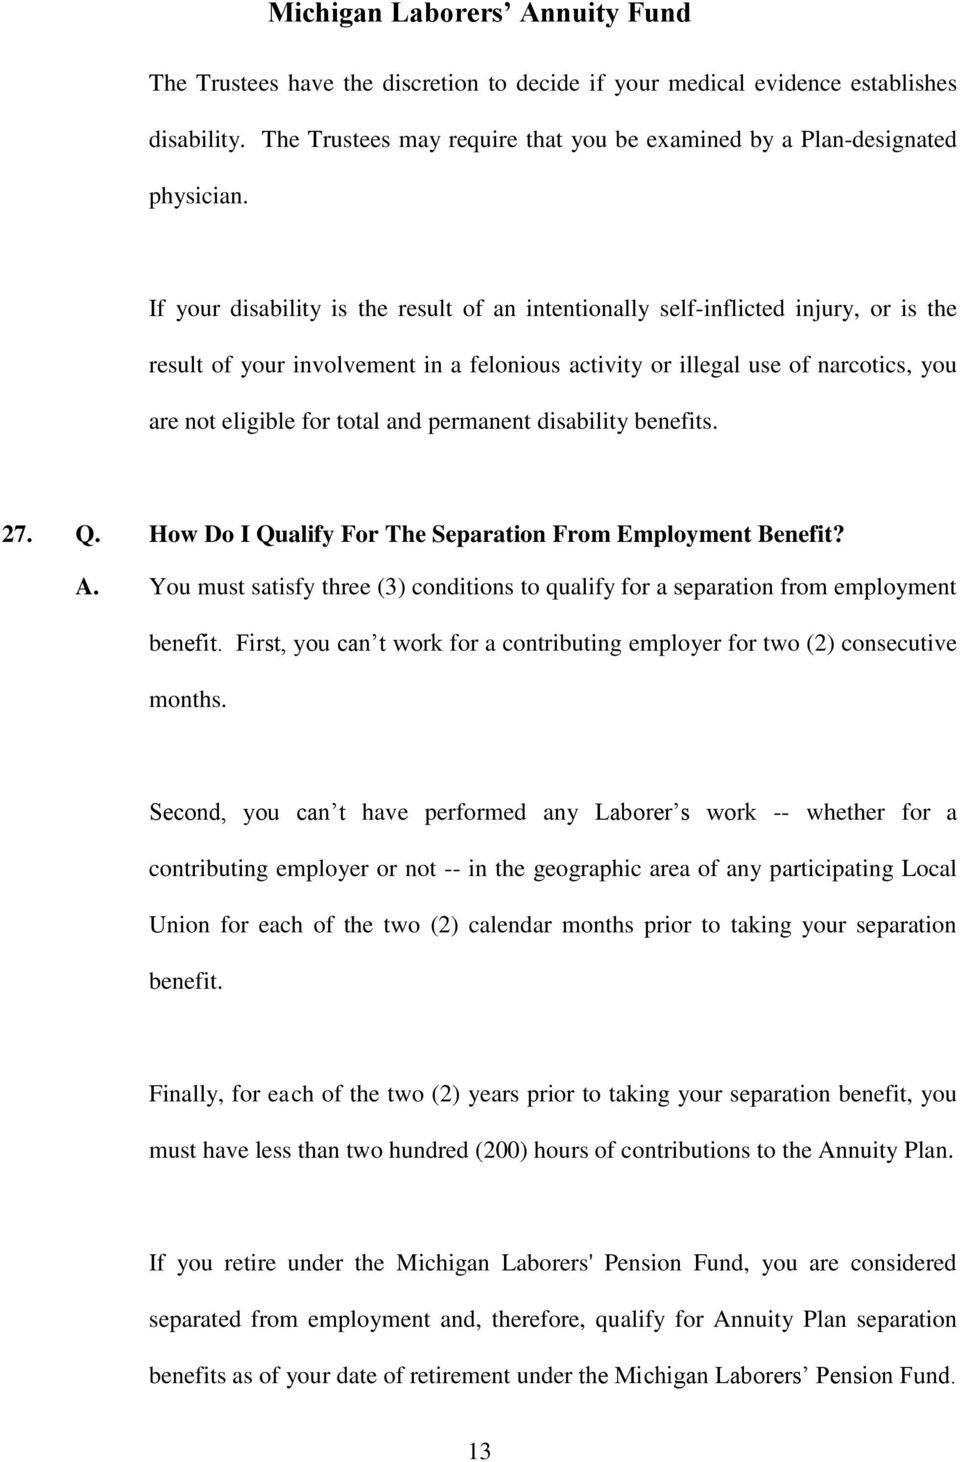 and permanent disability benefits. 27. Q. How Do I Qualify For The Separation From Employment Benefit? A. You must satisfy three (3) conditions to qualify for a separation from employment benefit.